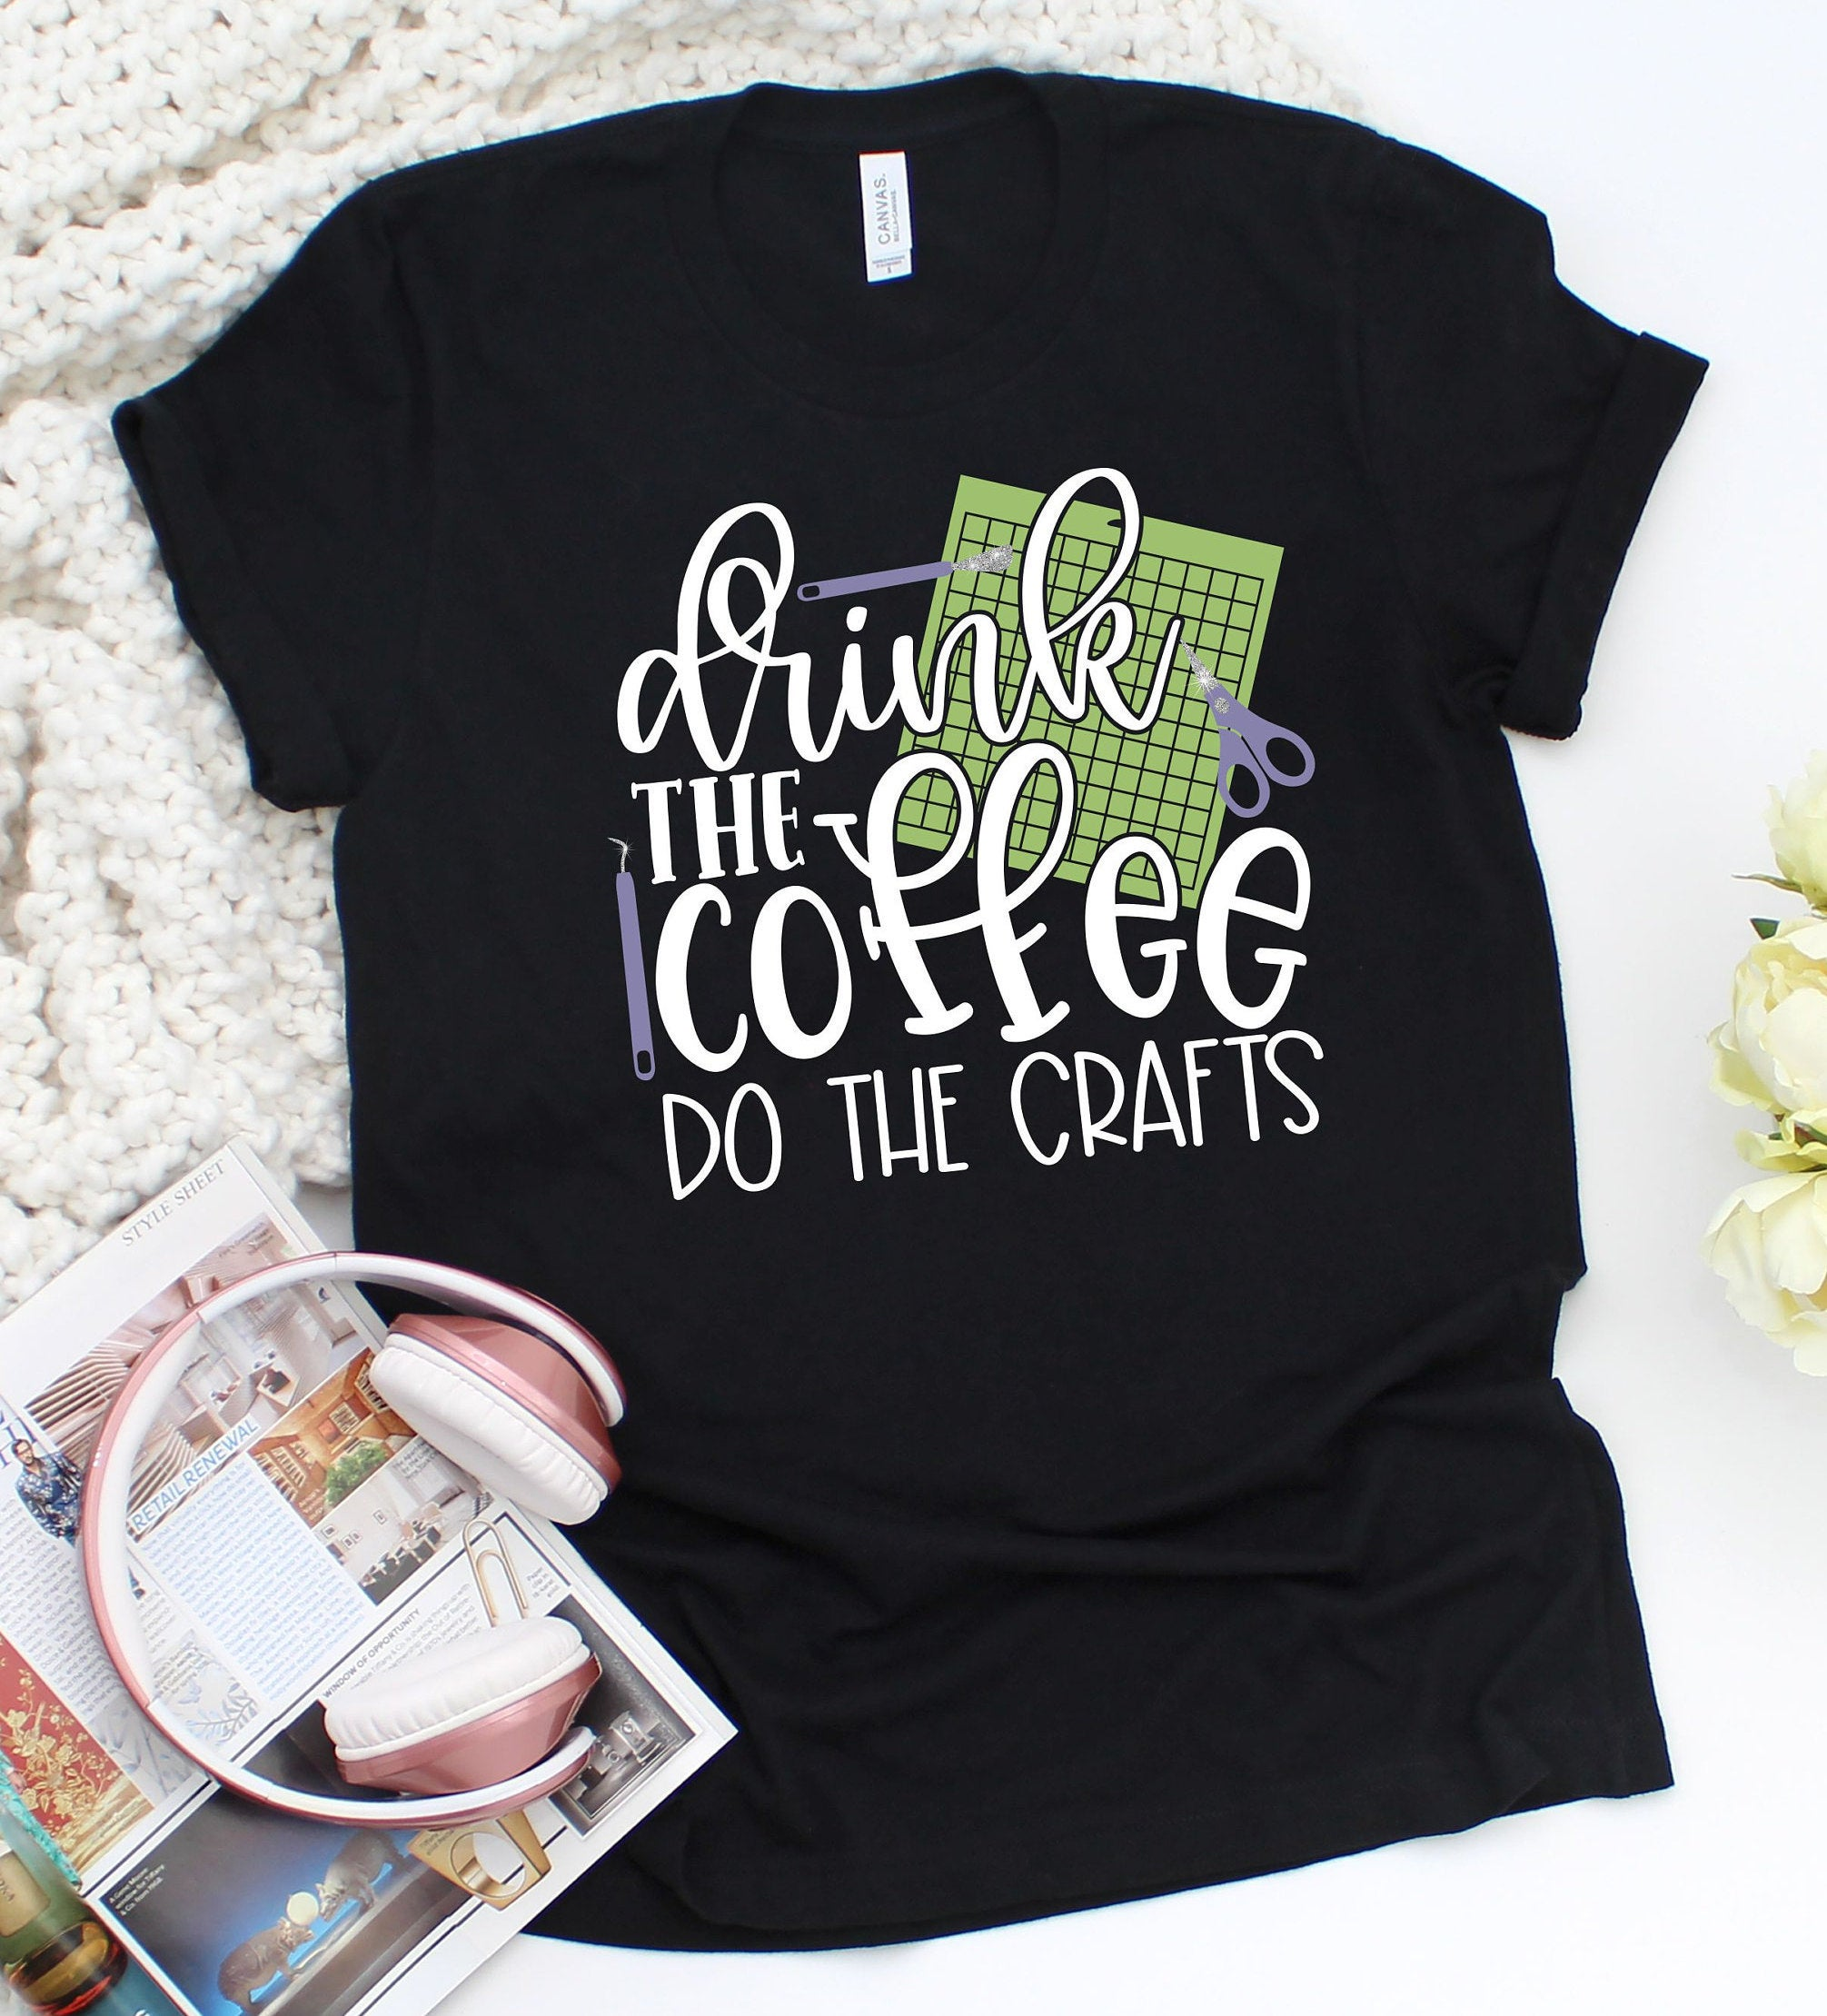 Drink-the-coffee-do-the-crafts-svg-coffee-svg-cricut-svg-crafty-saying-craft-svg-craft-svg-design-craft-cut-file-craft-svg-for-cricut-60512ec4